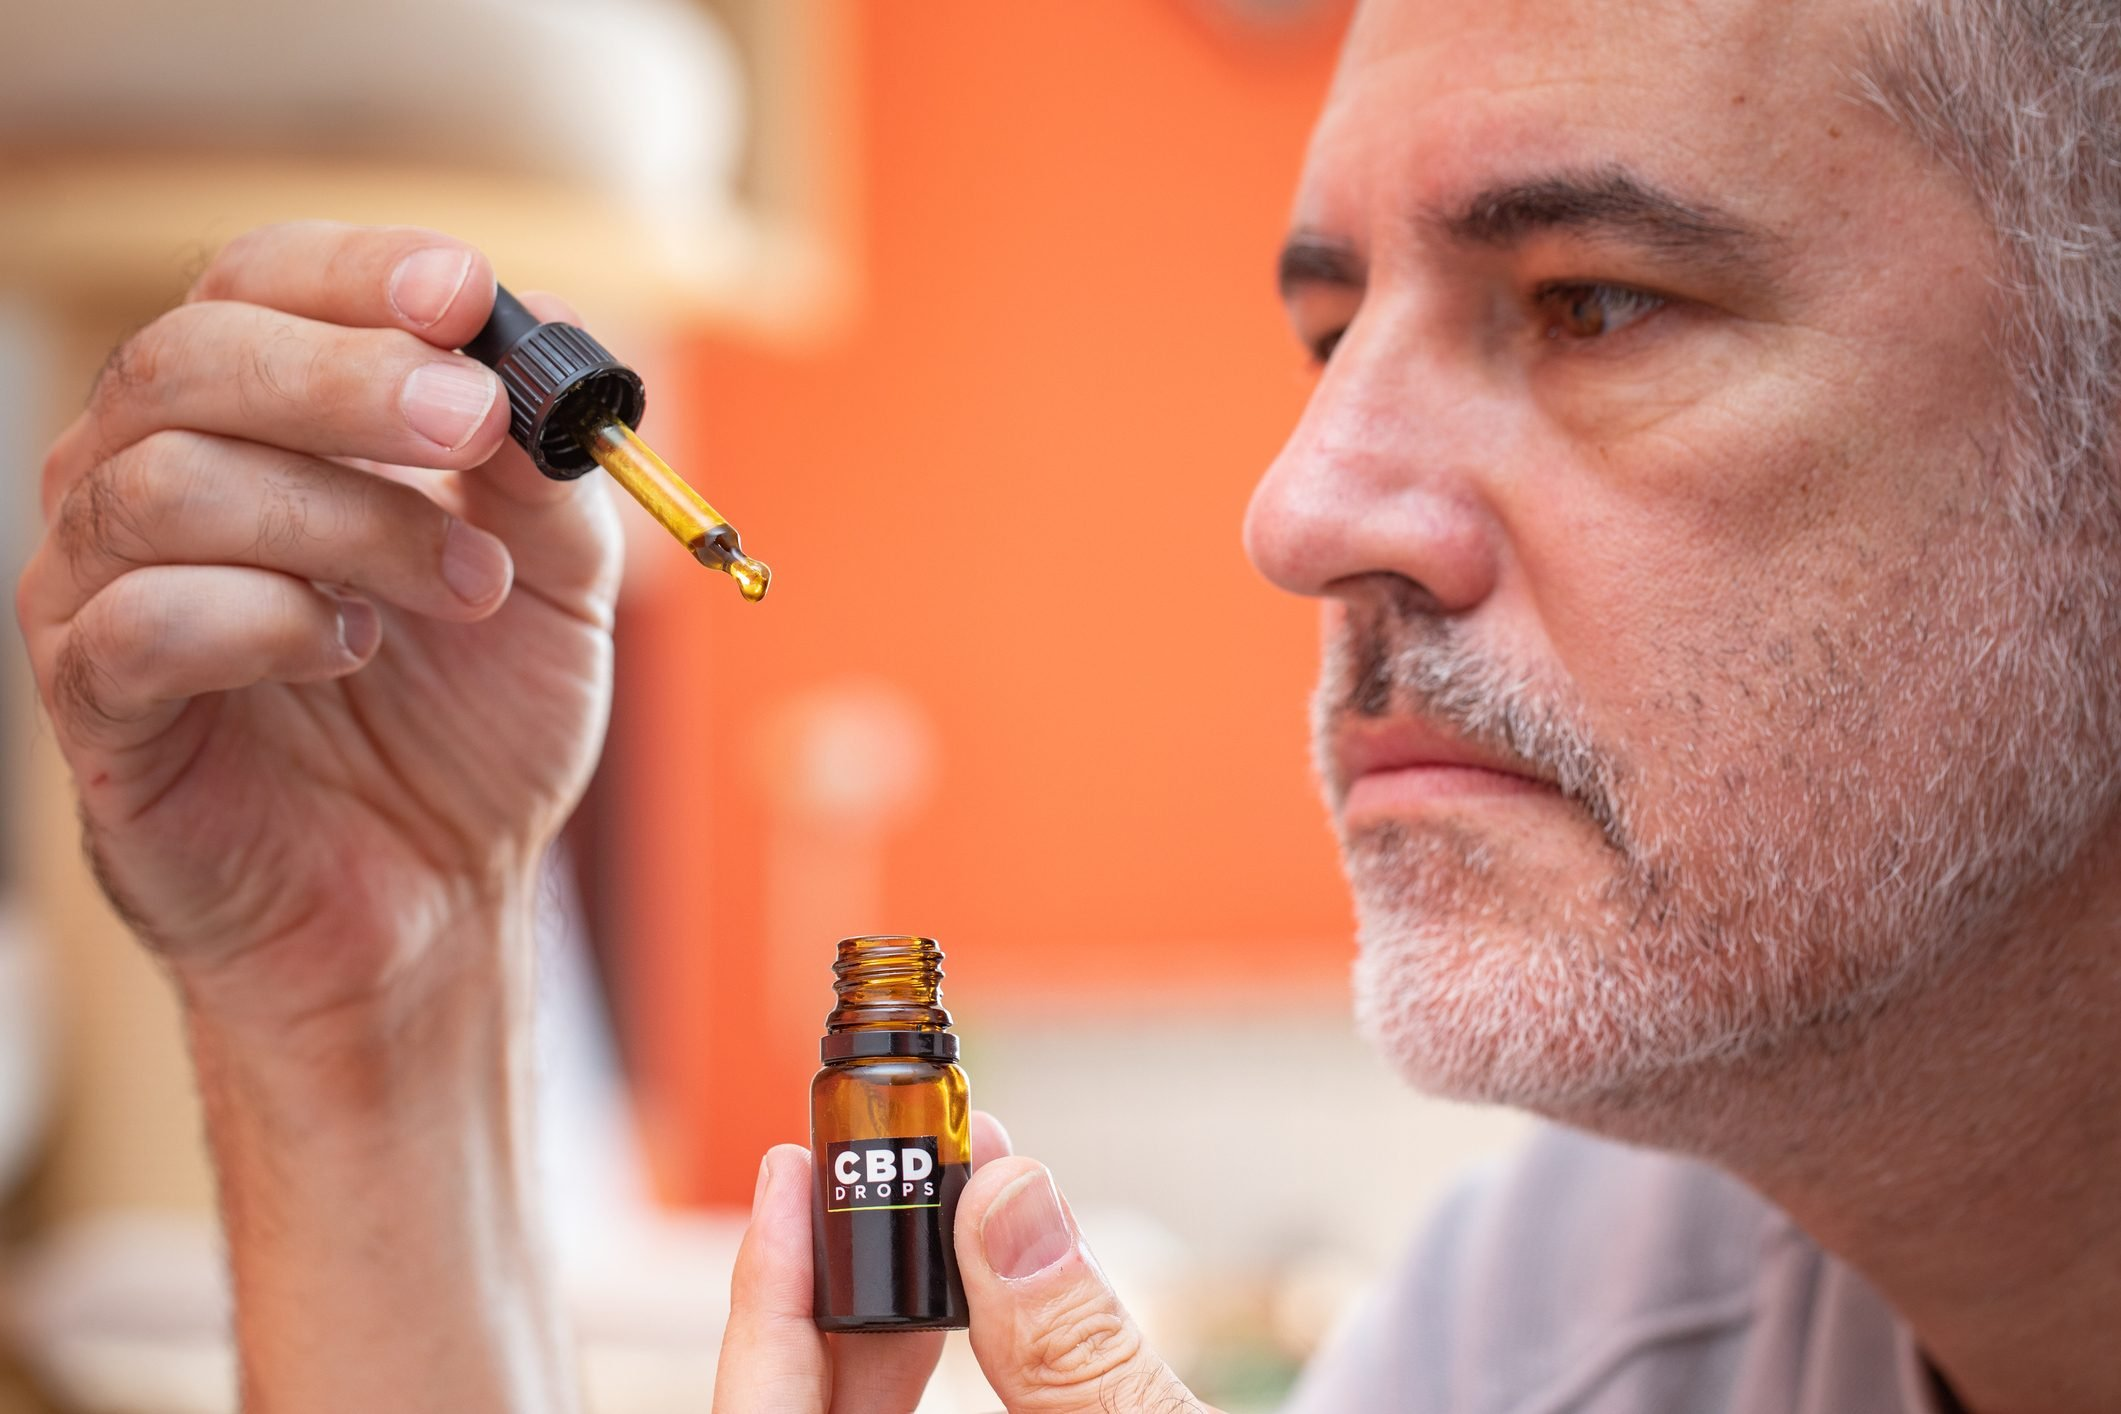 Mature Man Using CBD Oil at Home - Stock Photo